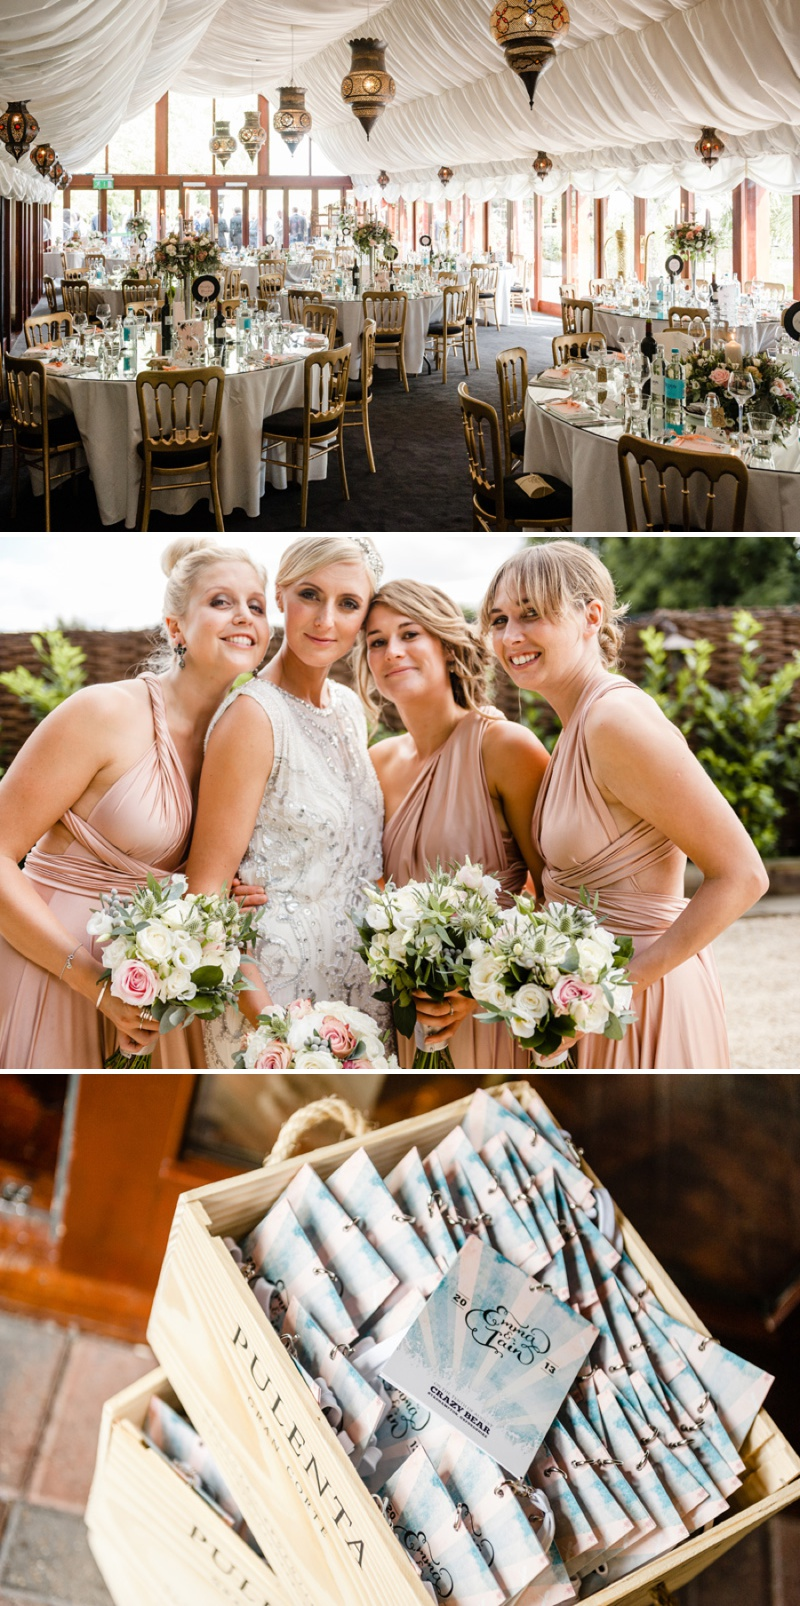 A Beautiful Music Inspired Wedding At The Crazy Bear In Stadhampton With A Jenny Packham Esme Wedding Dress and A Pink And Cream Avalanche Rose Bouquet. 0011 If Music Be The Food Of Love.